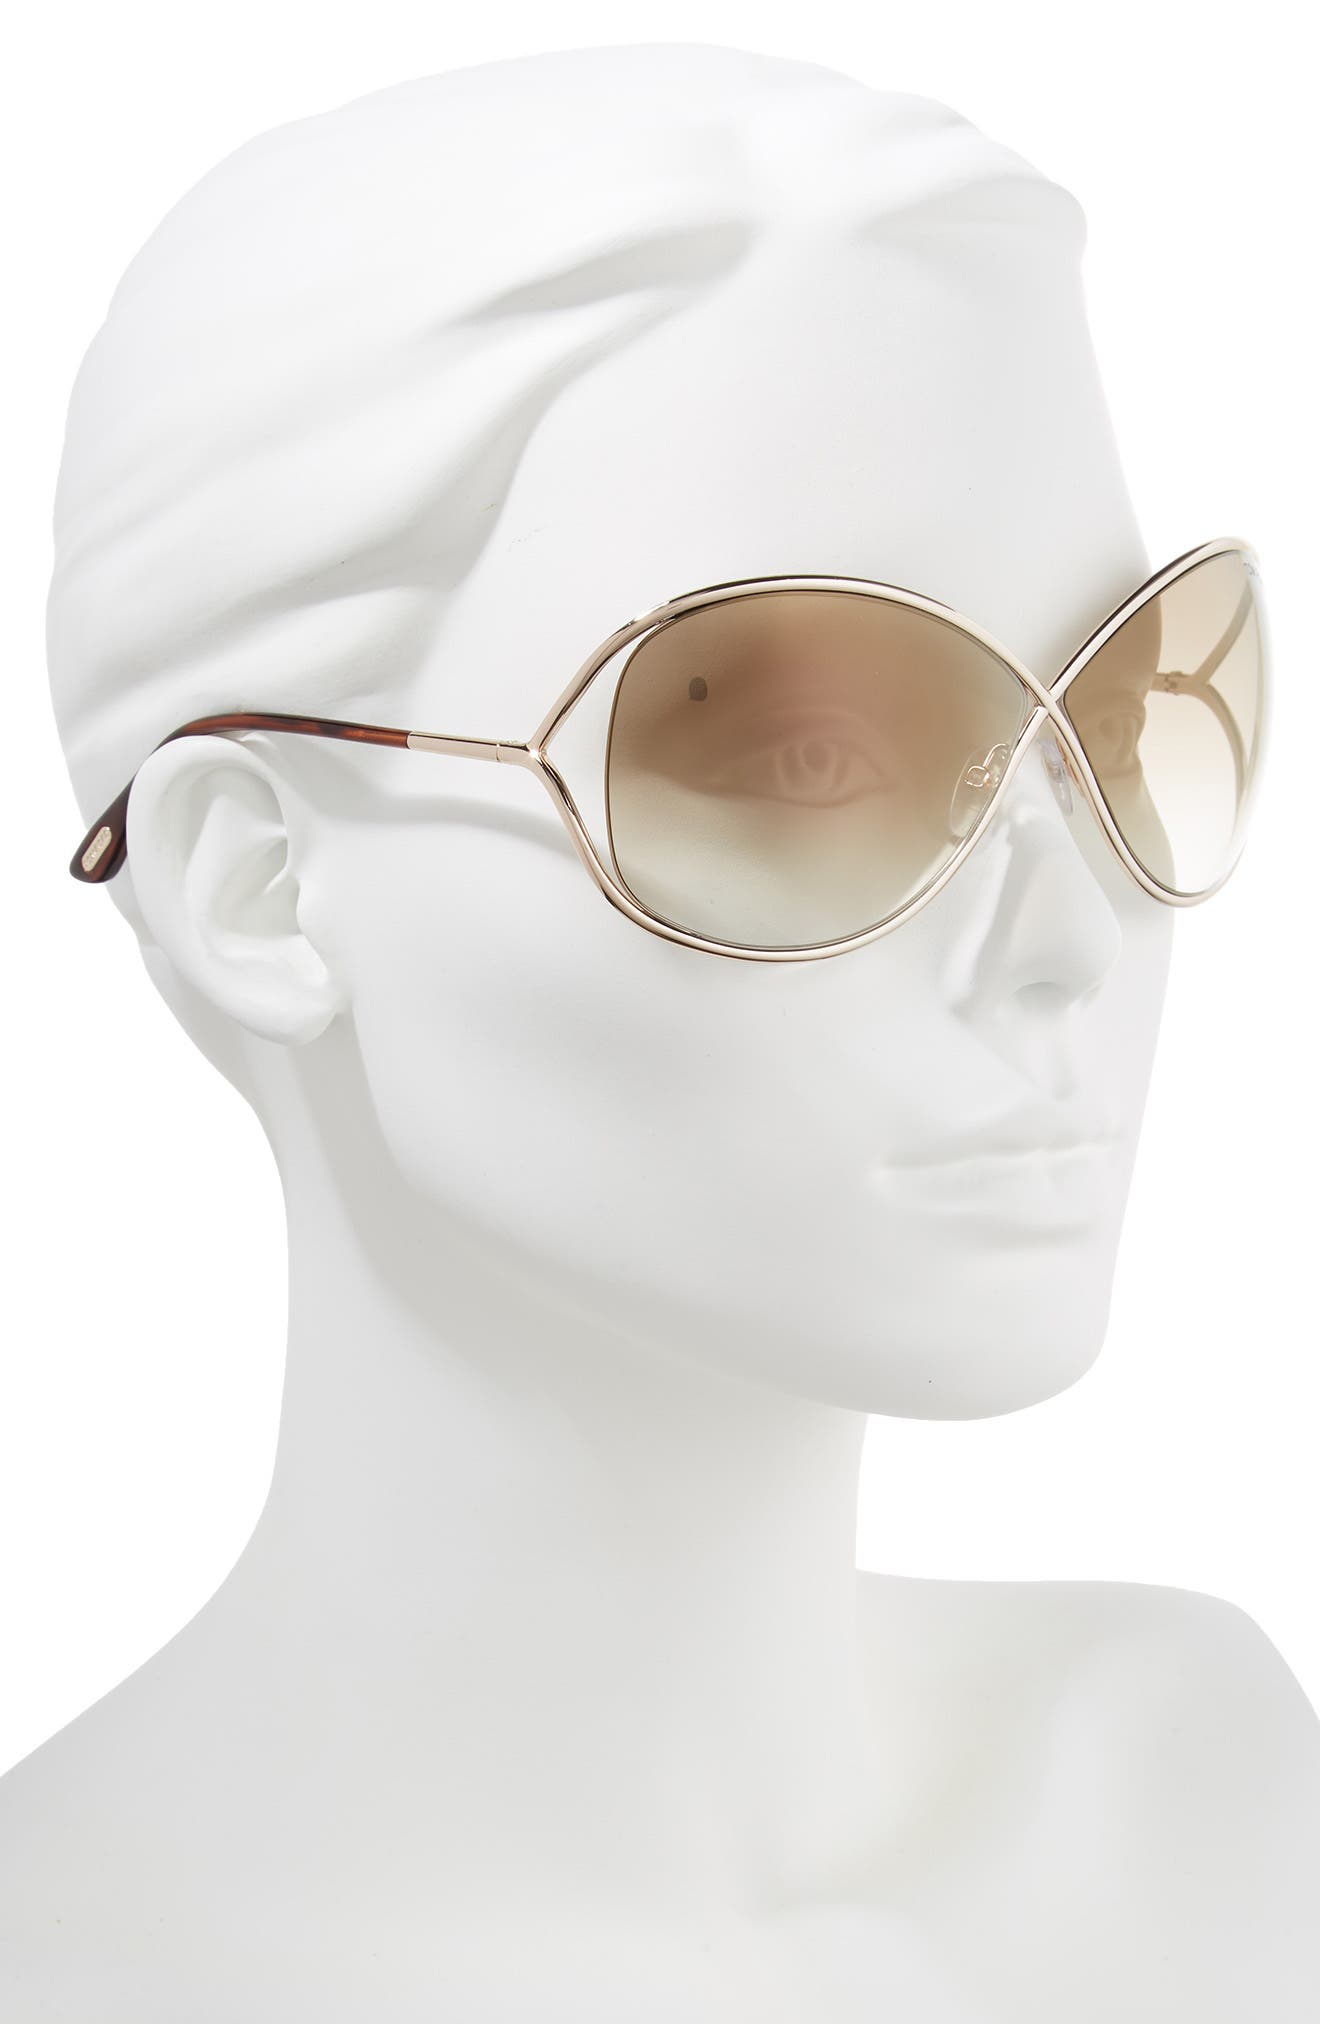 Miranda 68mm Open Temple Oversize Metal Sunglasses,                             Alternate thumbnail 2, color,                             SHINY ROSE GOLD/ BROWN